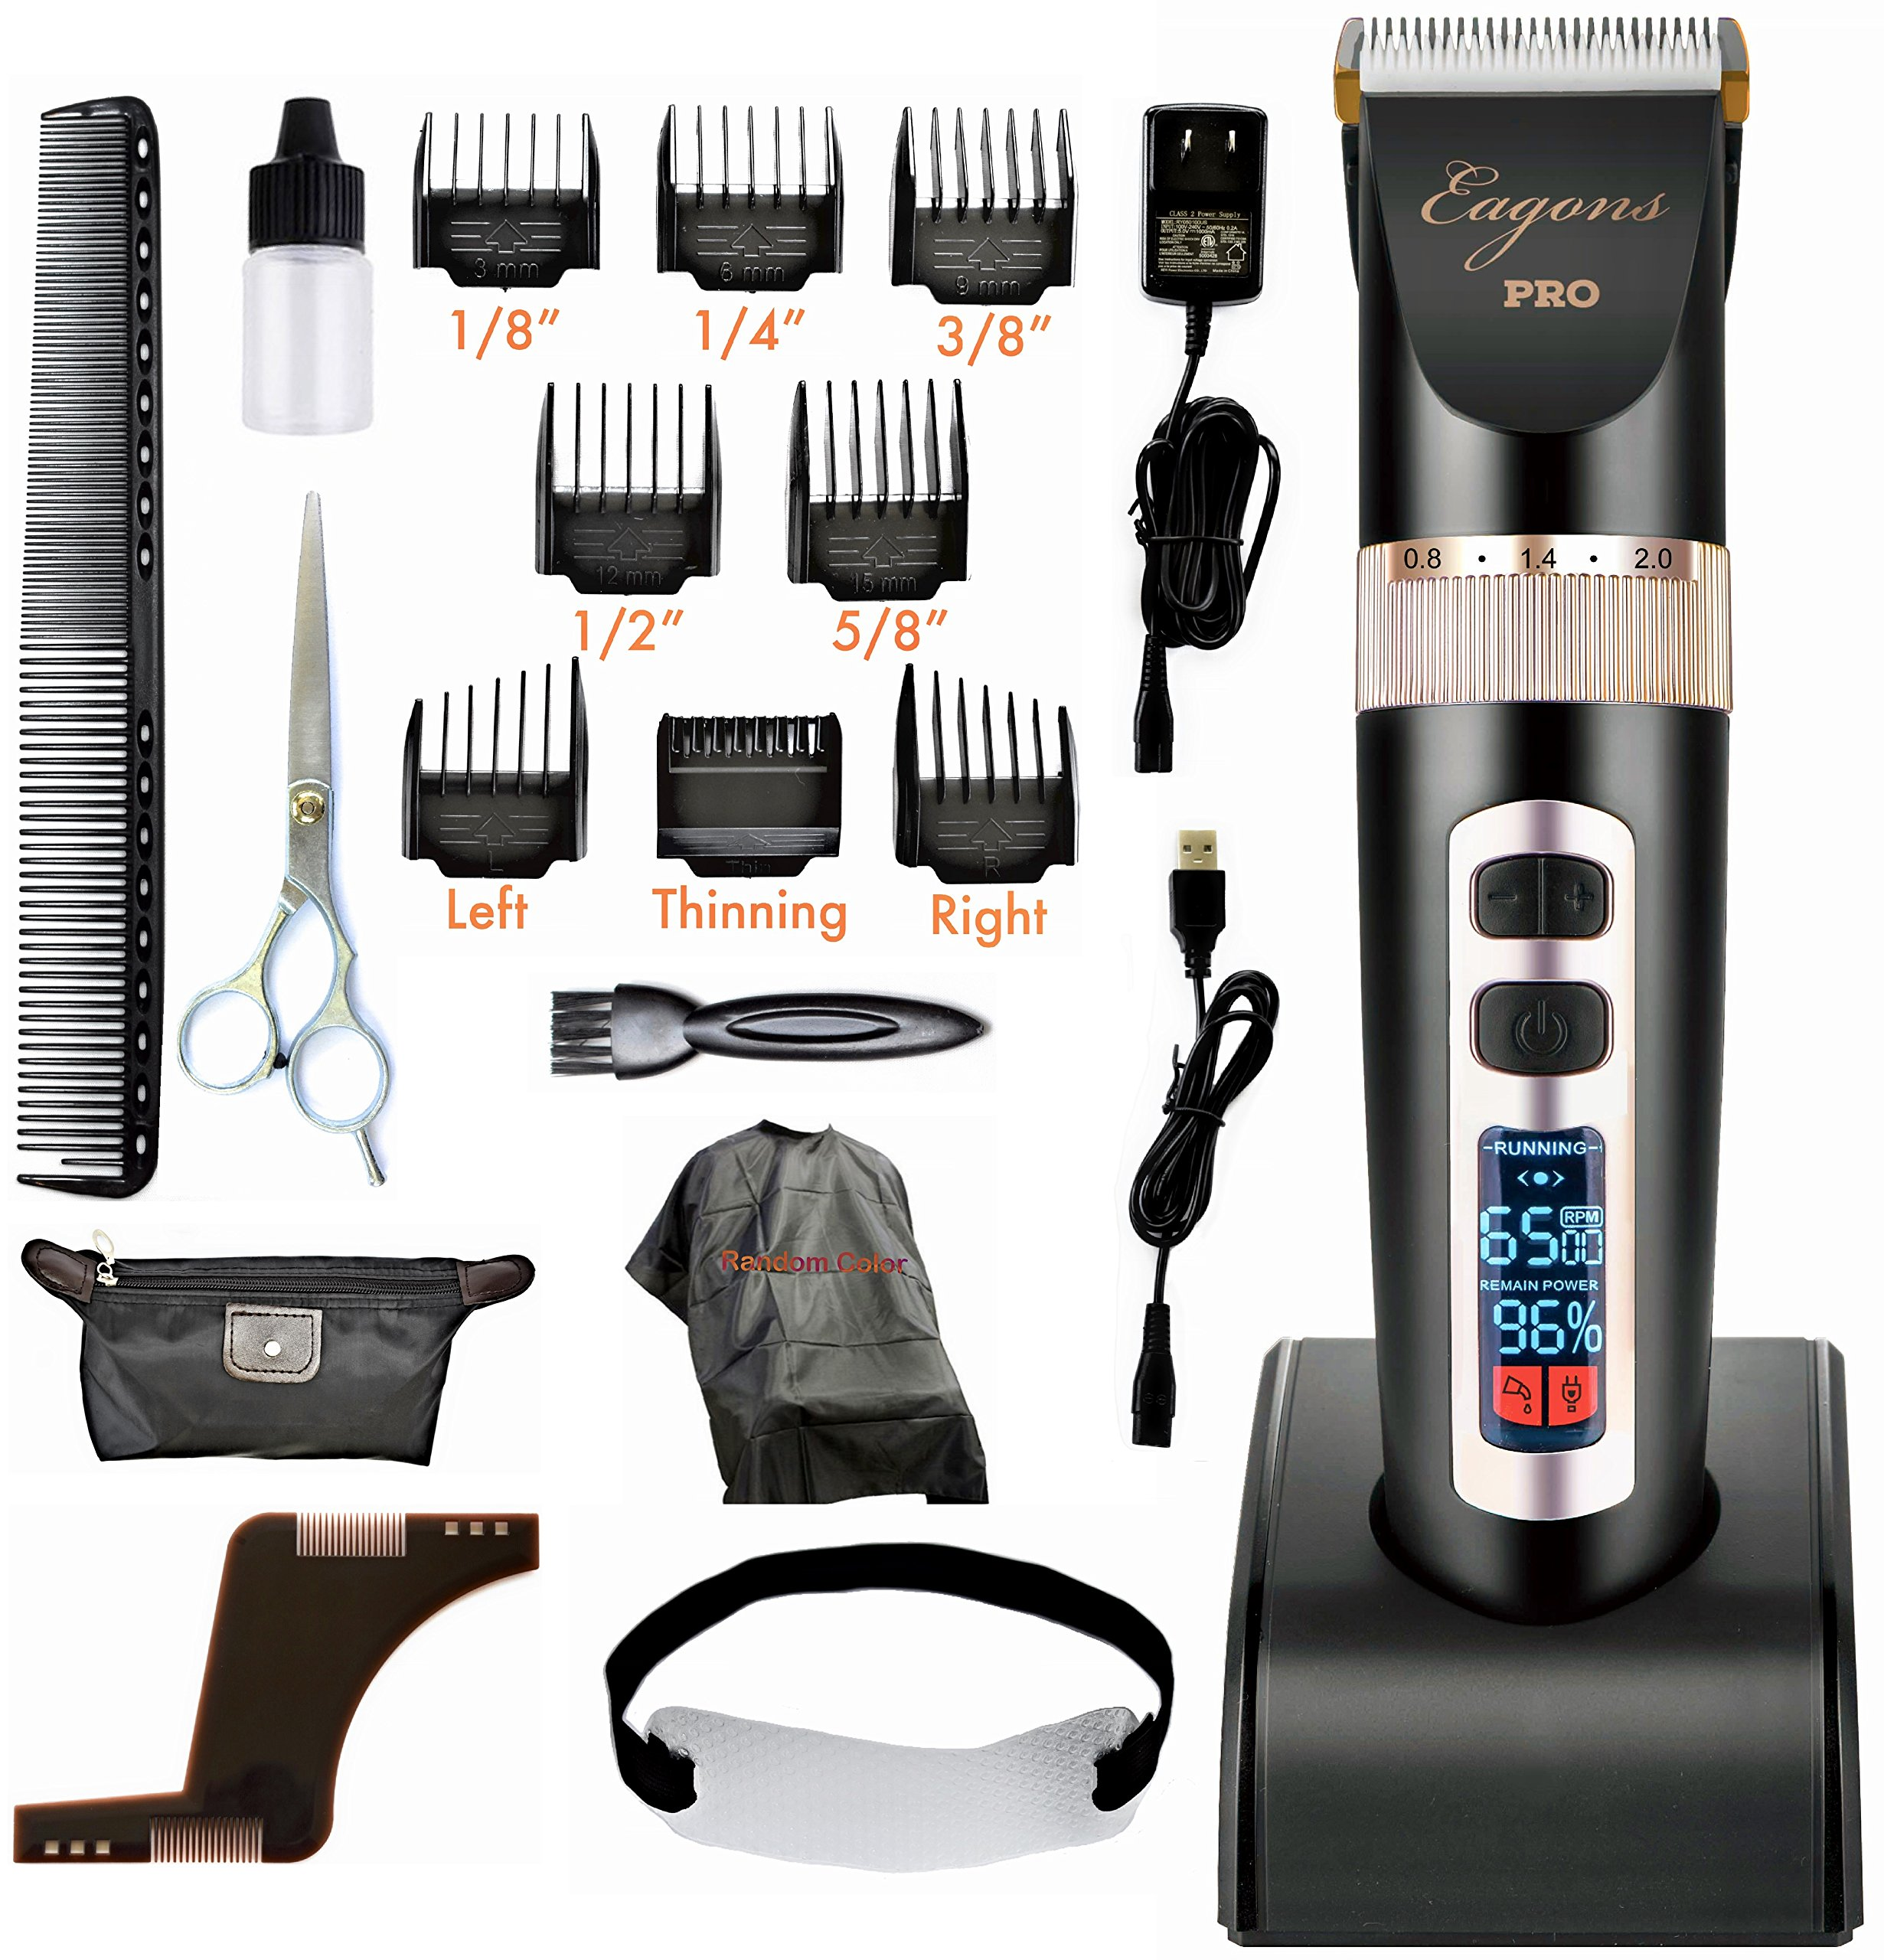 Professional hair clipper, ultra quiet design, 2000mAH Li-ion battery, 3 speed settings, 4 hours cordless runtime, 5 blade position settings, 8 guide combs, plus more in accessory kit, Eagons PRO